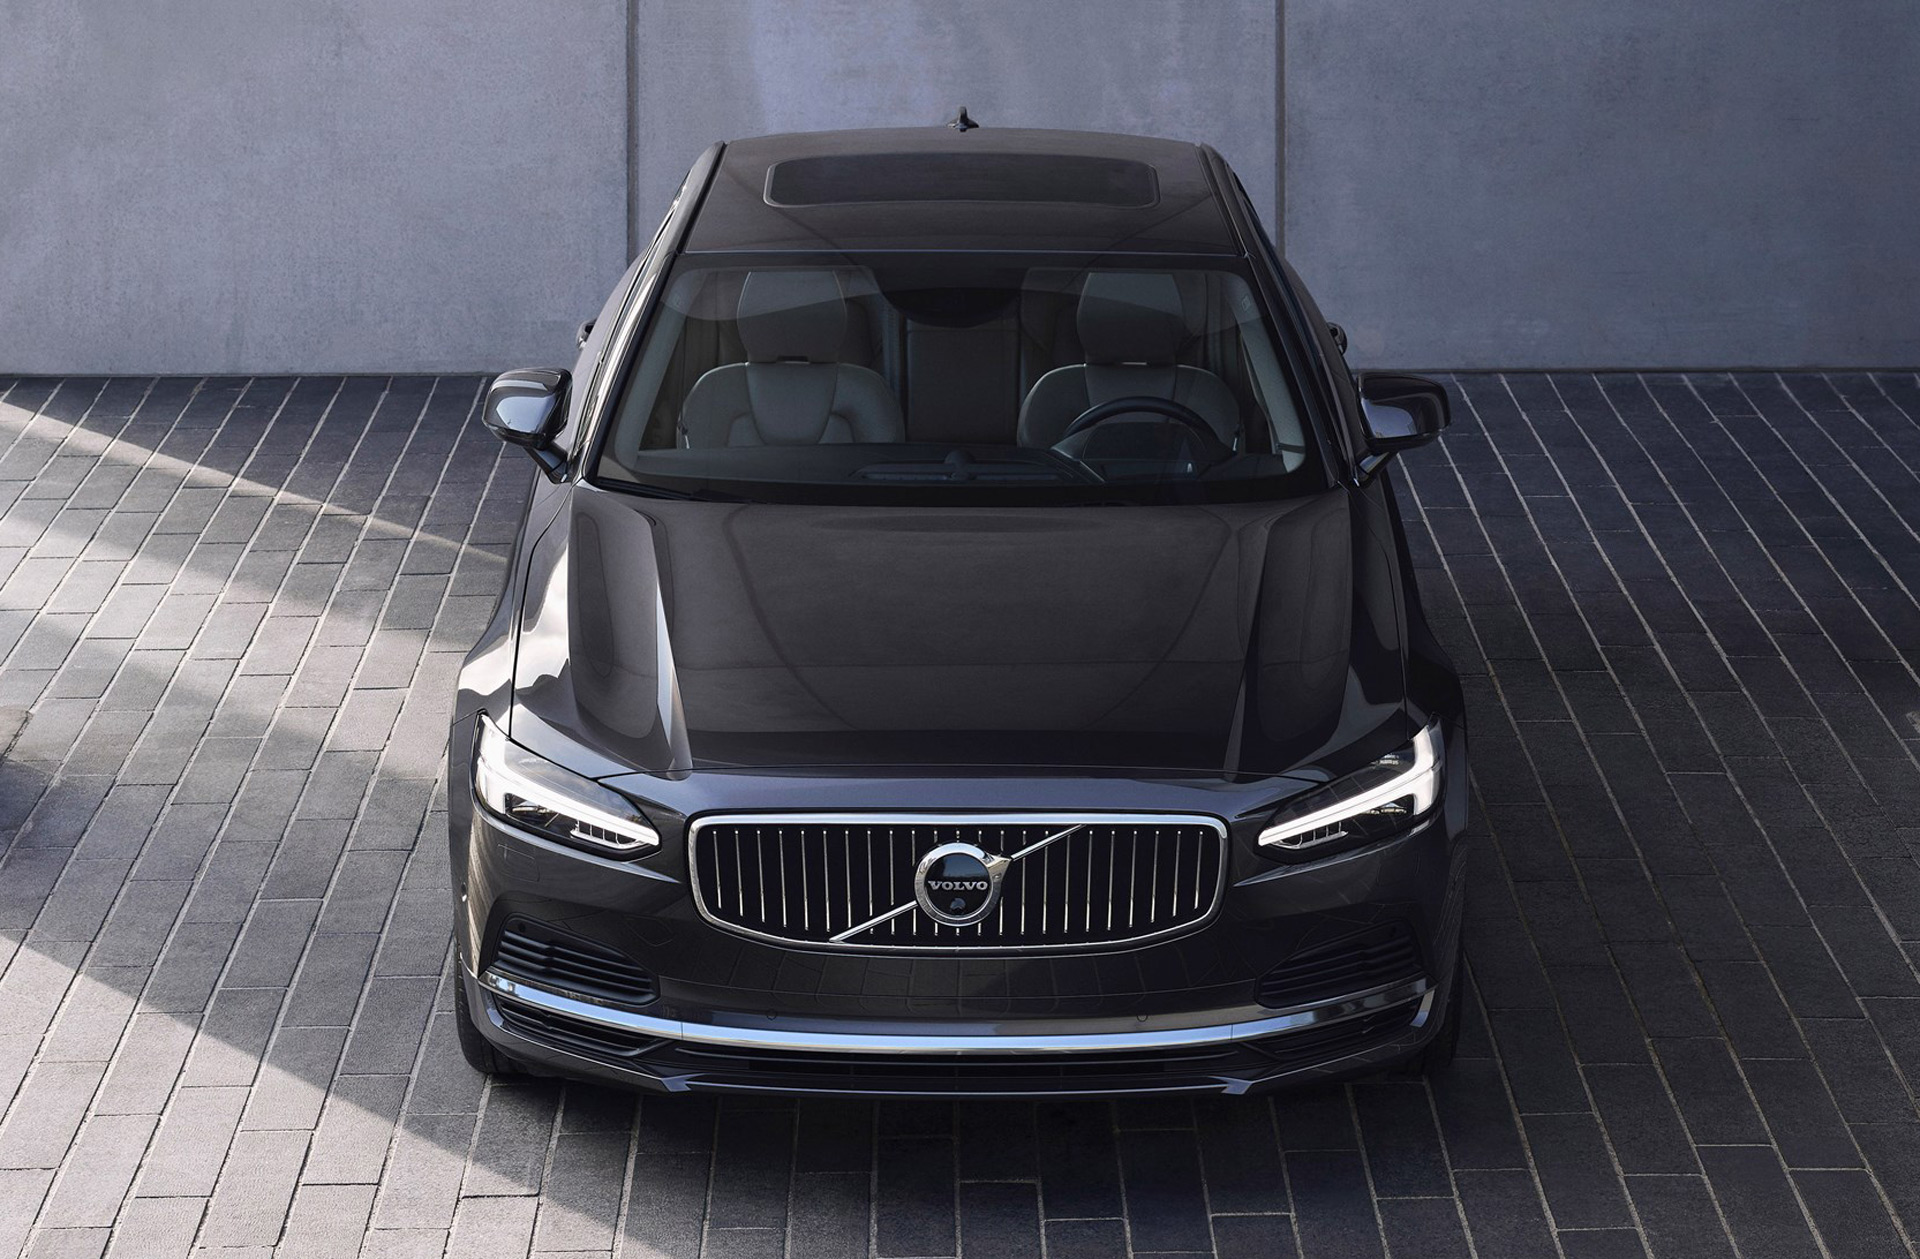 2021 volvo s90 and v90 receive updates including mild